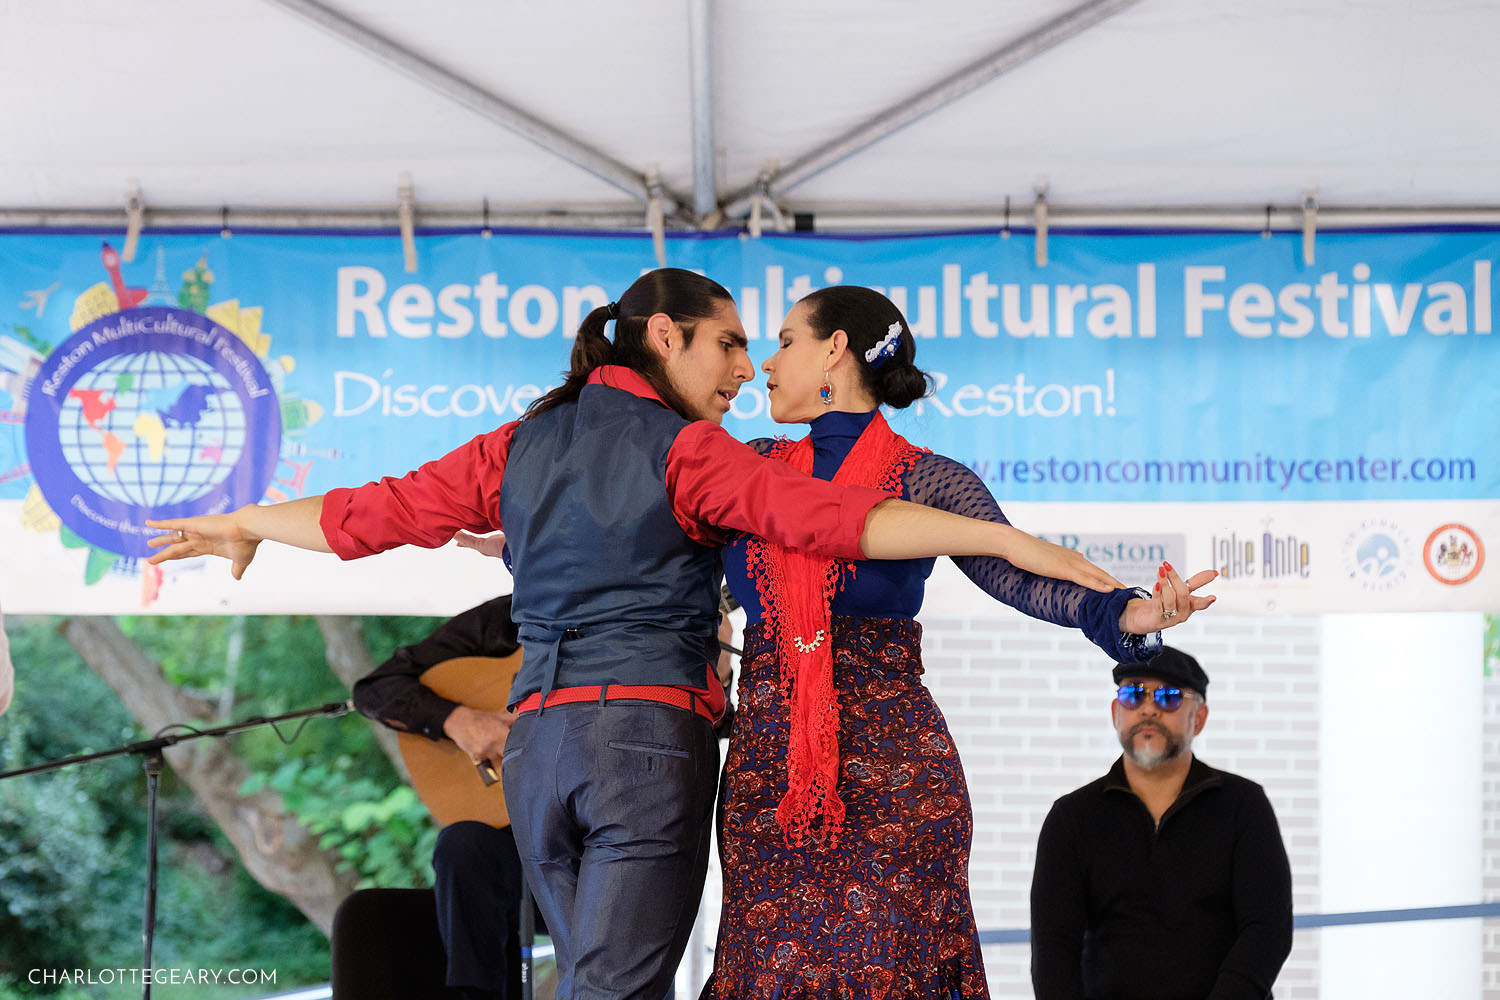 Furia Flamenca flamenco dancers at the Reston Multicultural Festival